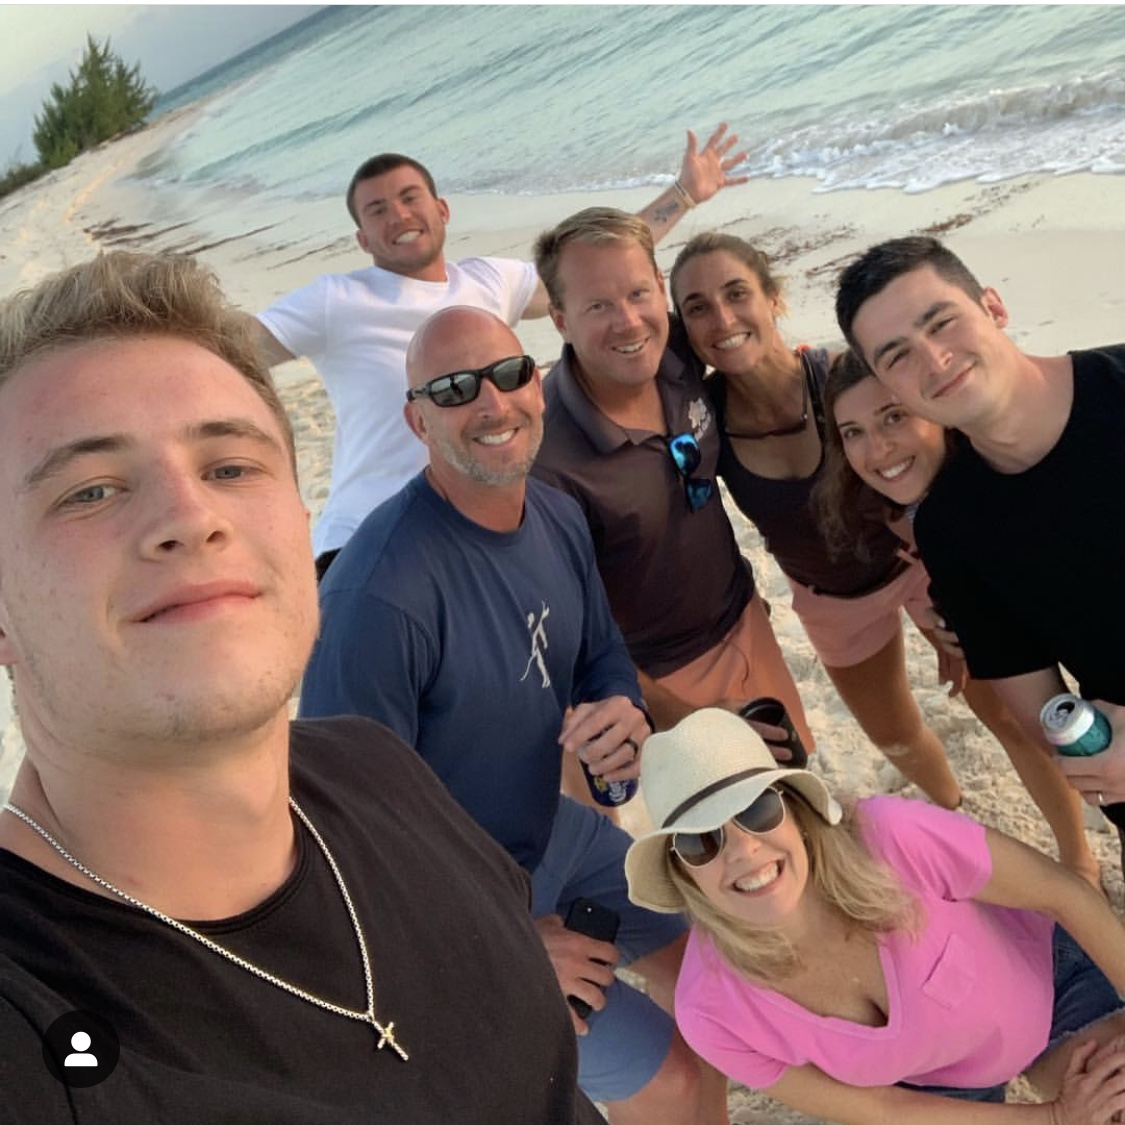 Proehl family charter british virgin islands, march 2019